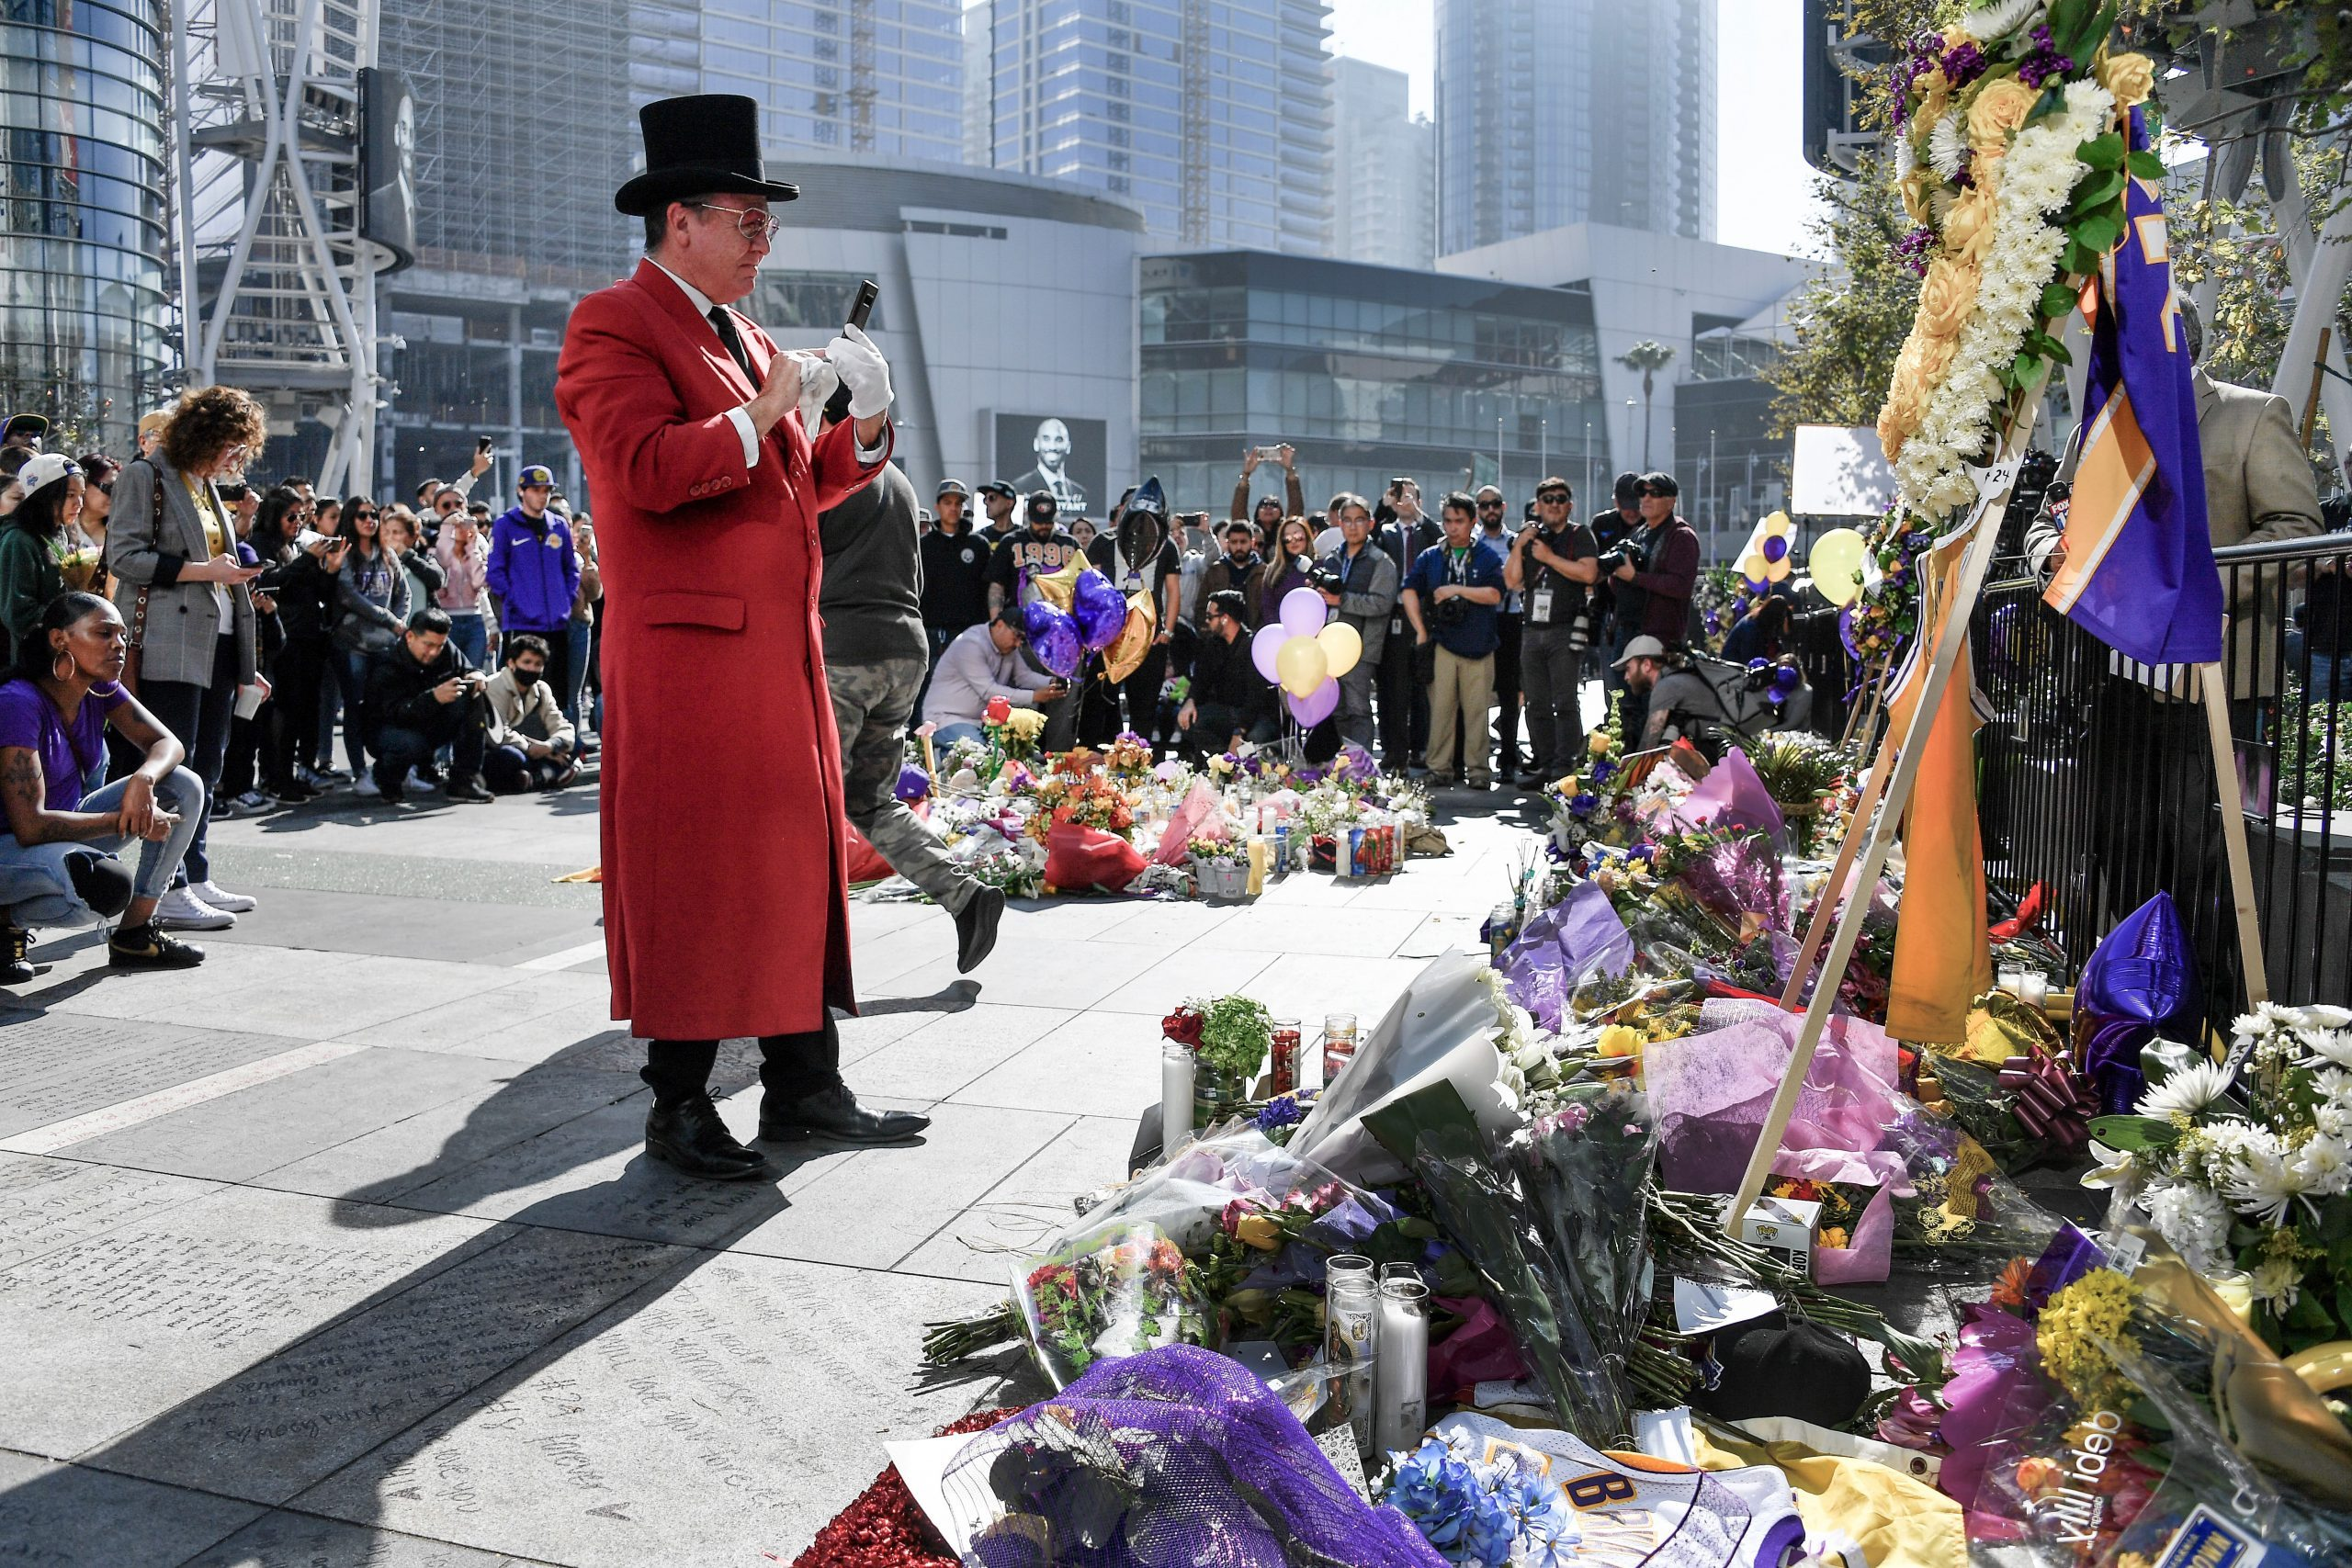 Kobe and COVID-19: The Eerie Coincidence from January 27